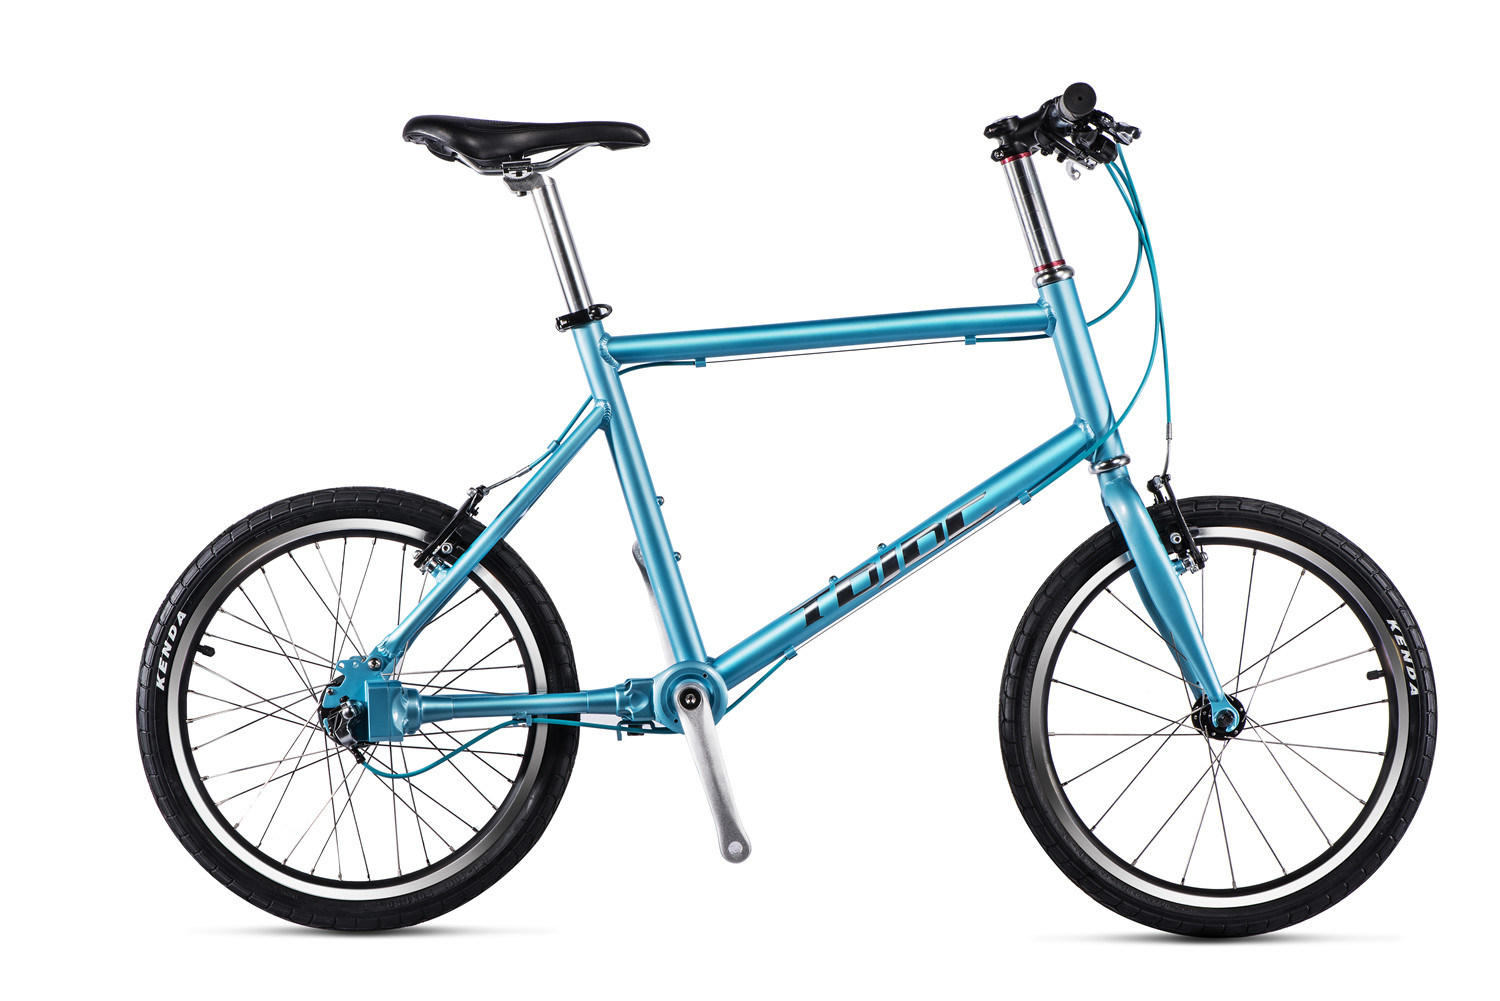 Wholesale Bicycles 26 Inch Shaft Drive Touring Bikes Chainless Inner 7-Speed for Trip High Price Bicycel Bicycle Themed Gift pictures & photos